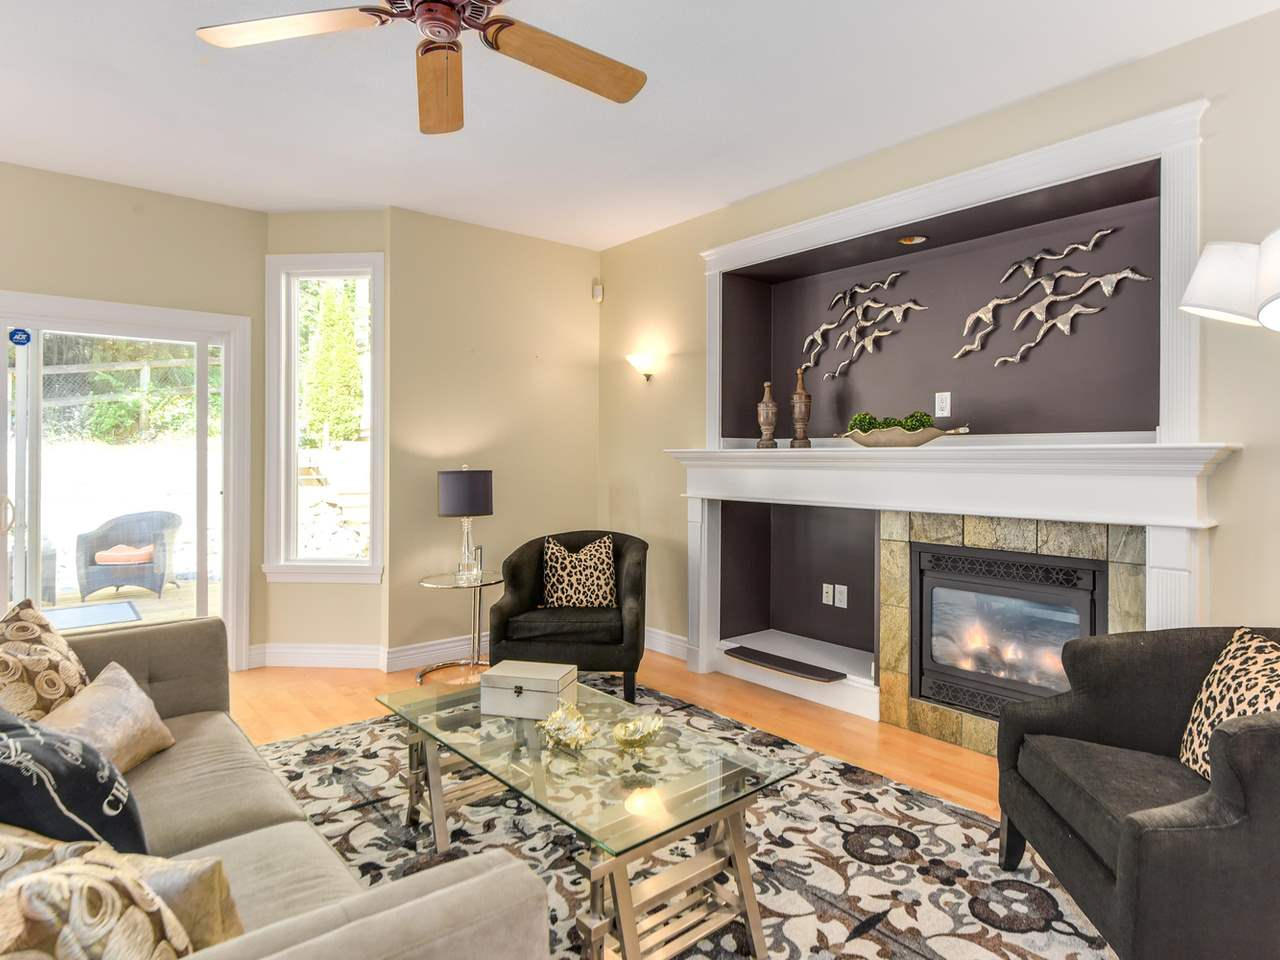 Photo 6: 3392 PLATEAU Boulevard in Coquitlam: Westwood Plateau House for sale : MLS® # R2093003